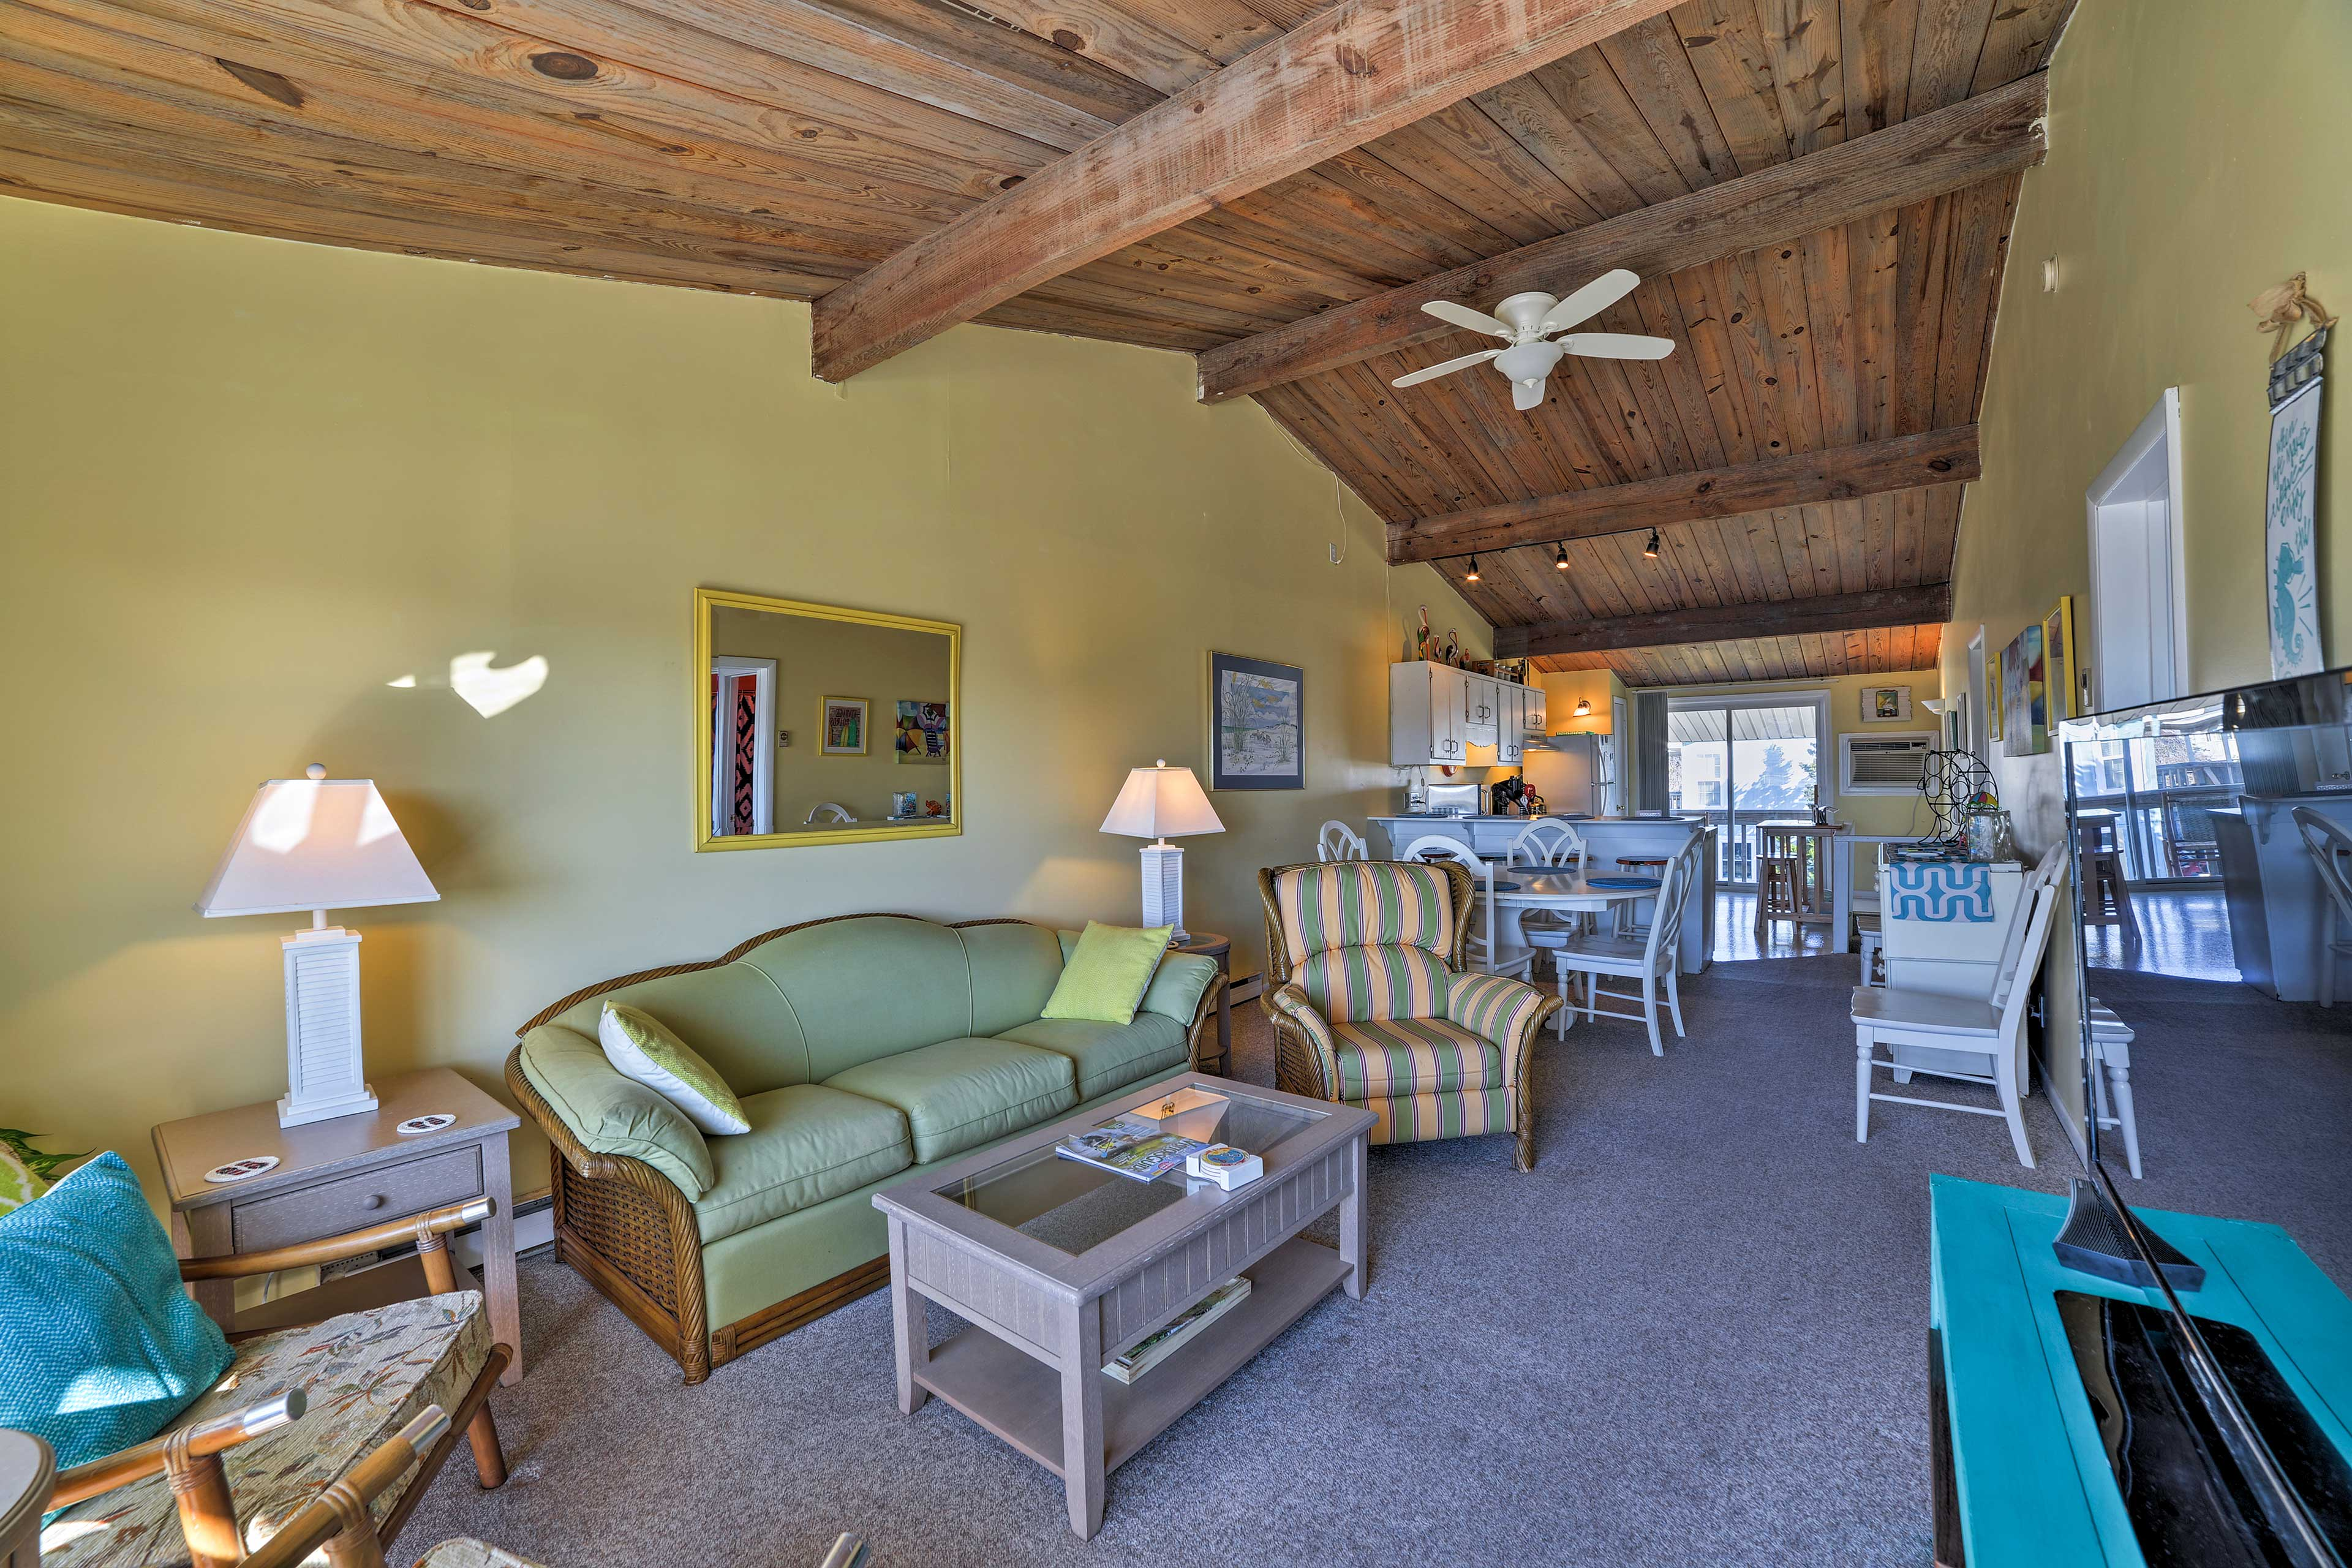 A rejuvenating retreat awaits at this lovely Atlantic Beach vacation rental home.